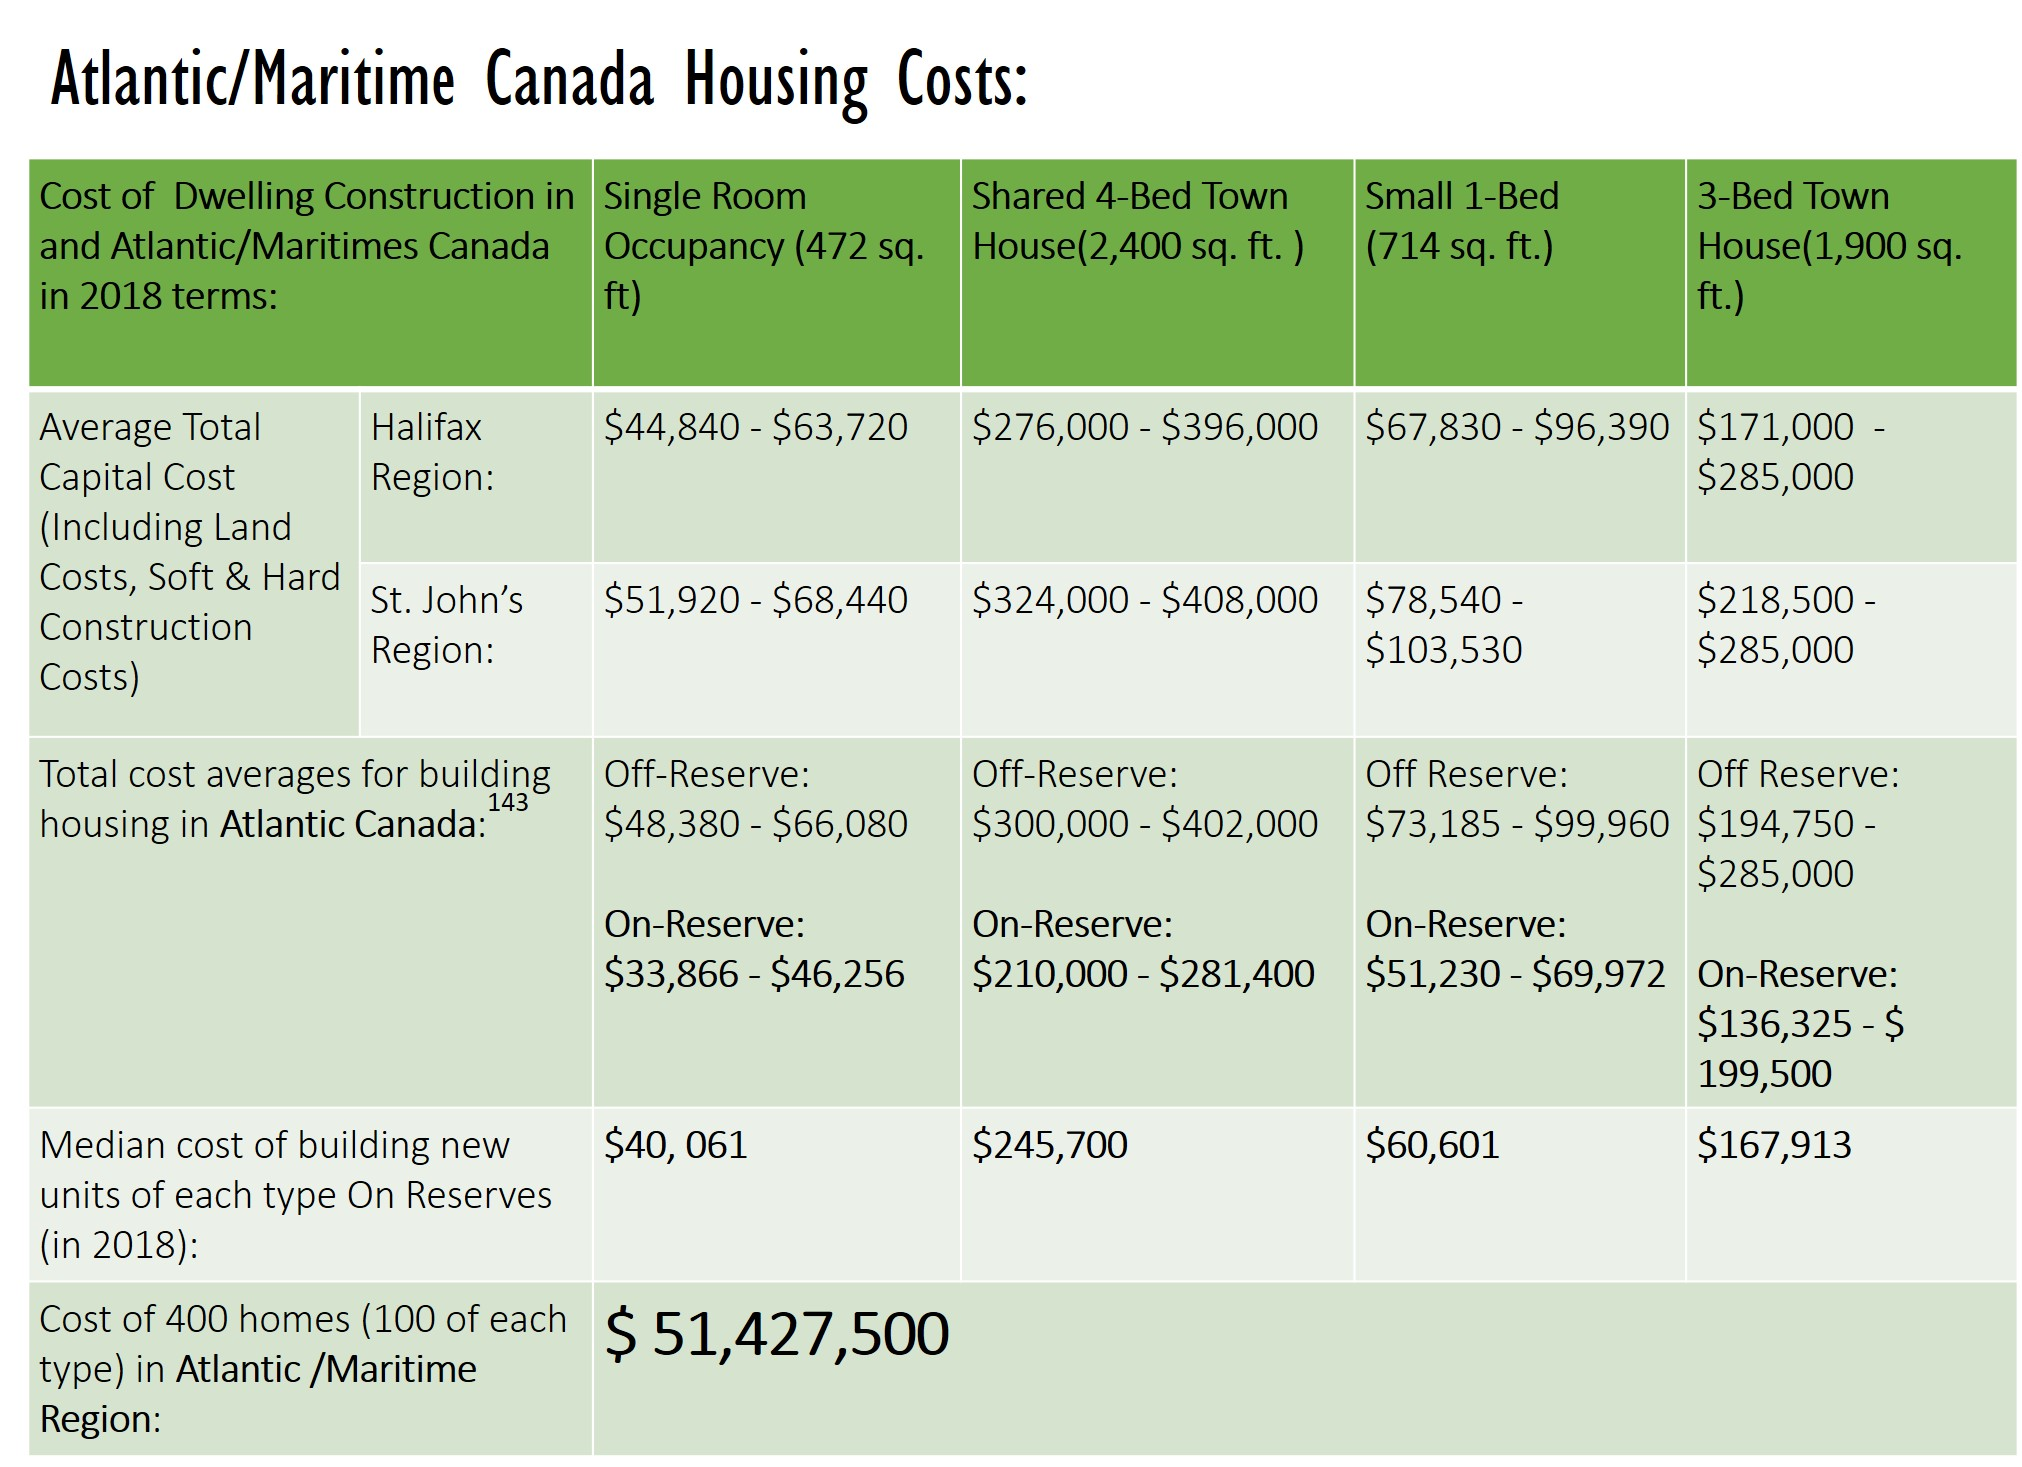 Atlantic/Maritime Canada Housing Costs: Cost of 400 homes (100 of each type) in Atlantic /Maritime Region $ 51,427,500